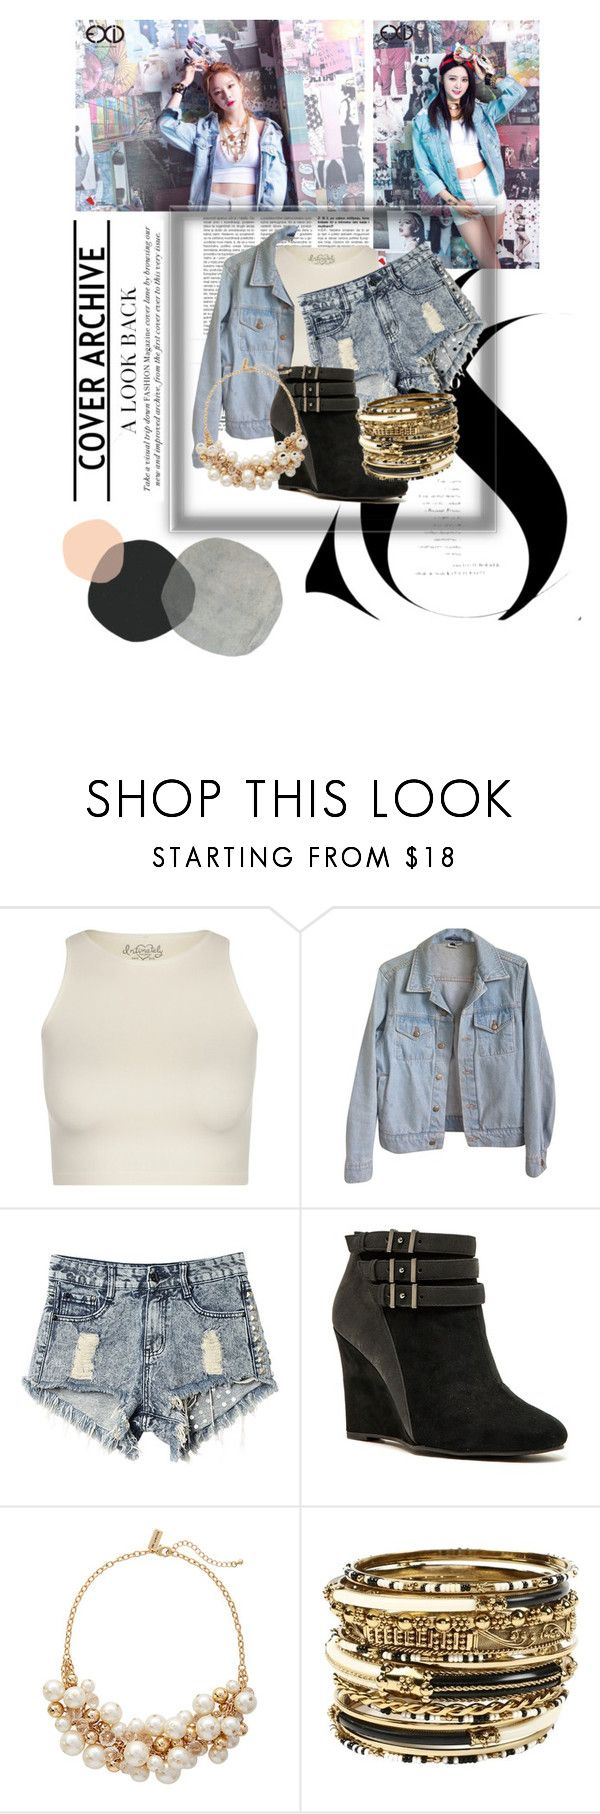 """""""~Exid~"""" by fashstyle16 ❤ liked on Polyvore featuring Free People, American Apparel, Qupid, The Limited and Amrita Singh"""